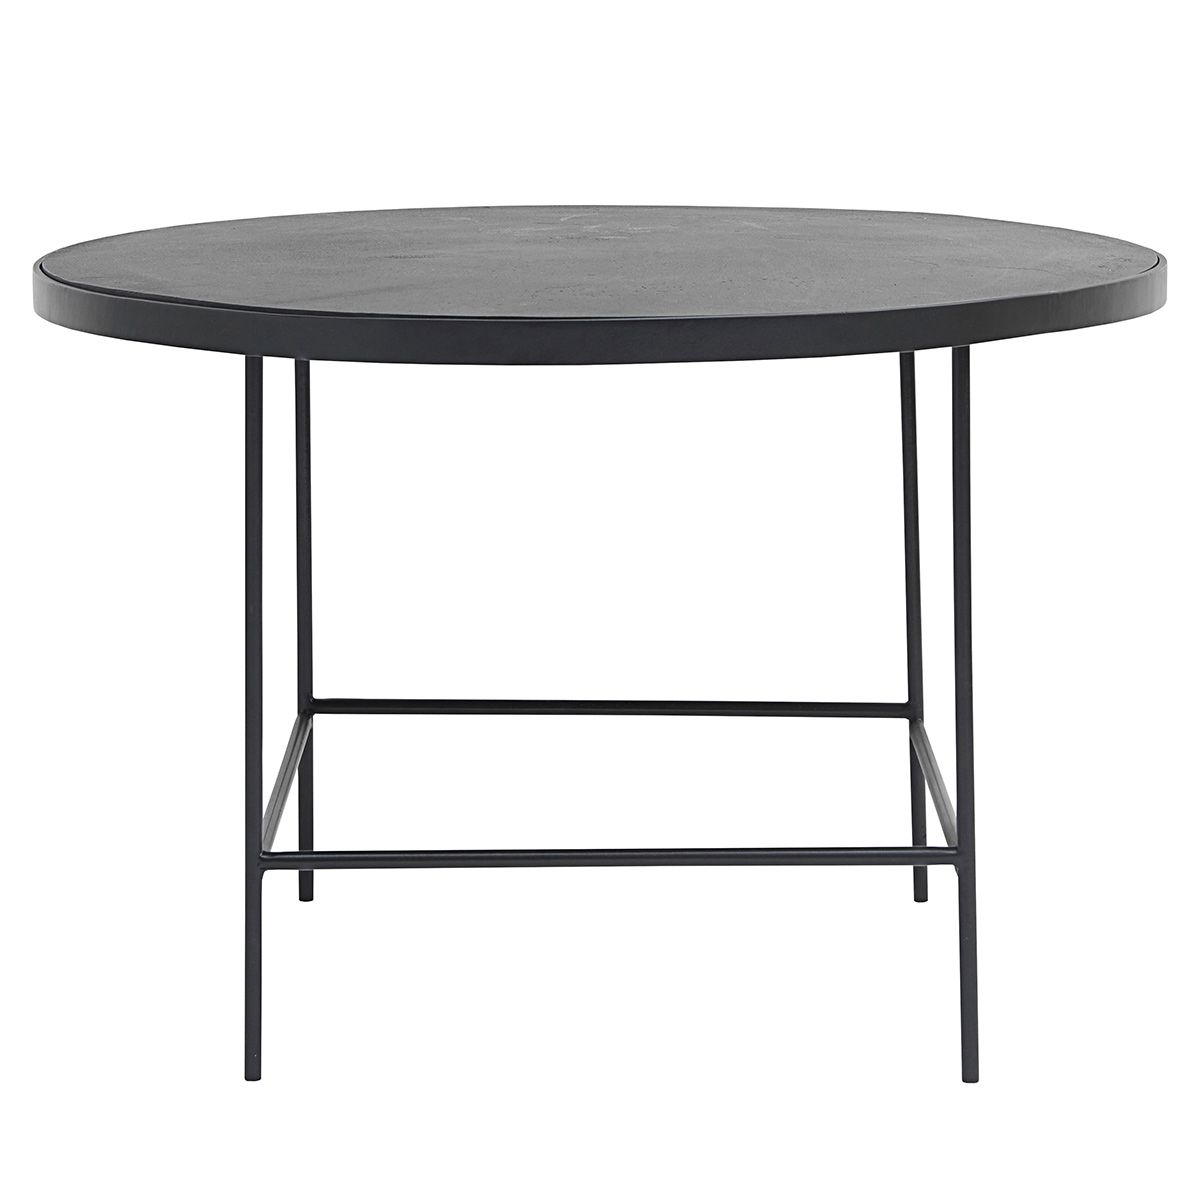 Table basse ronde en métal noir Balance House Doctor